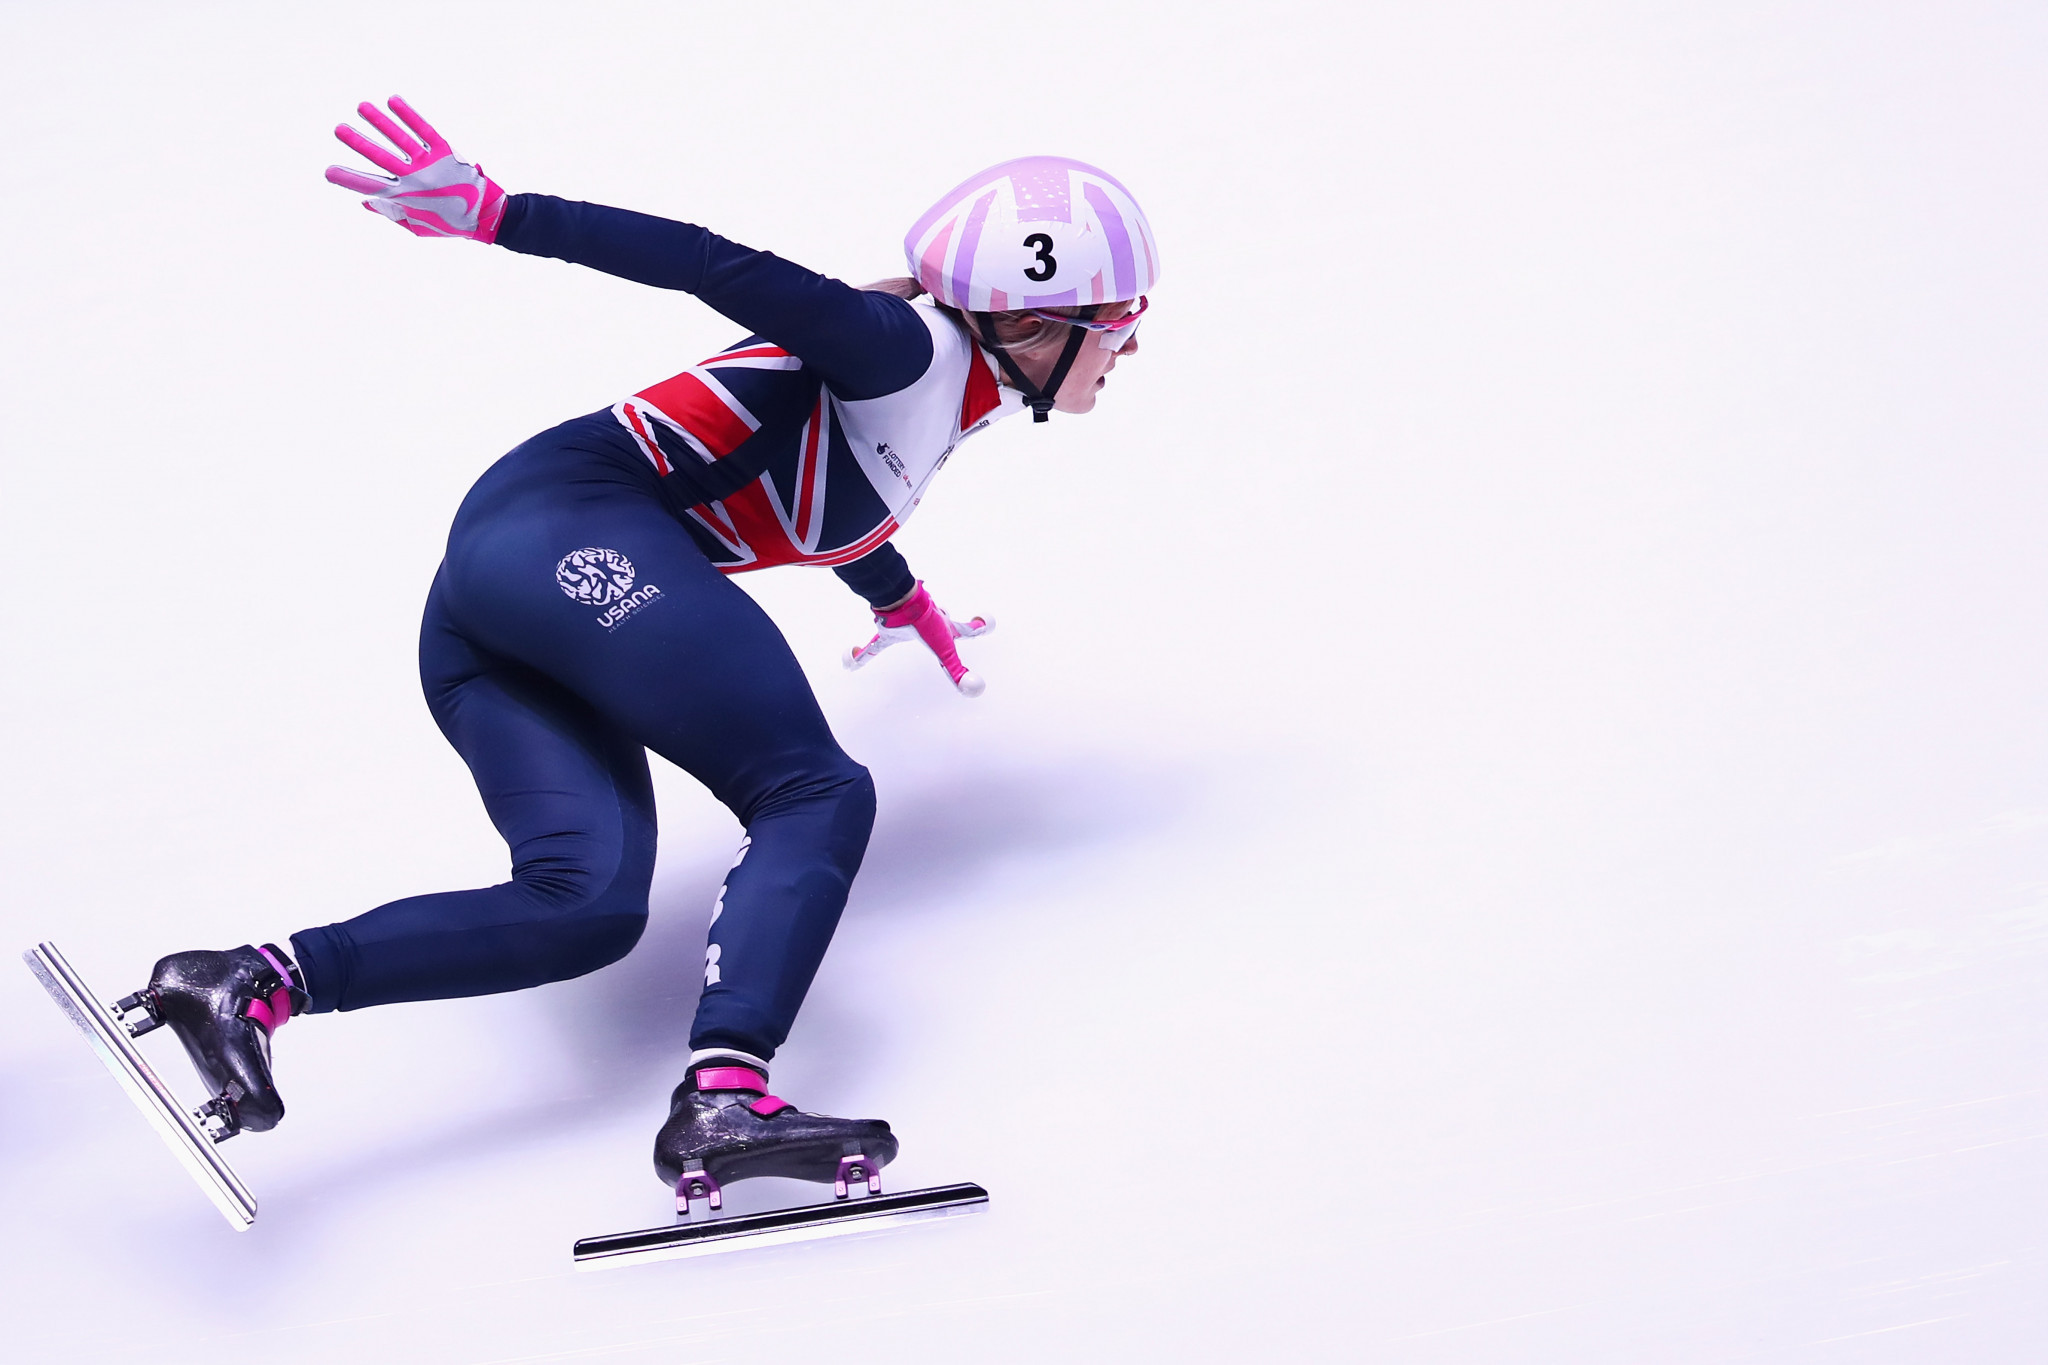 Elise Christie, the dominant force in women's short track recently, will also be in action in the Hungarian capital ©Getty Images